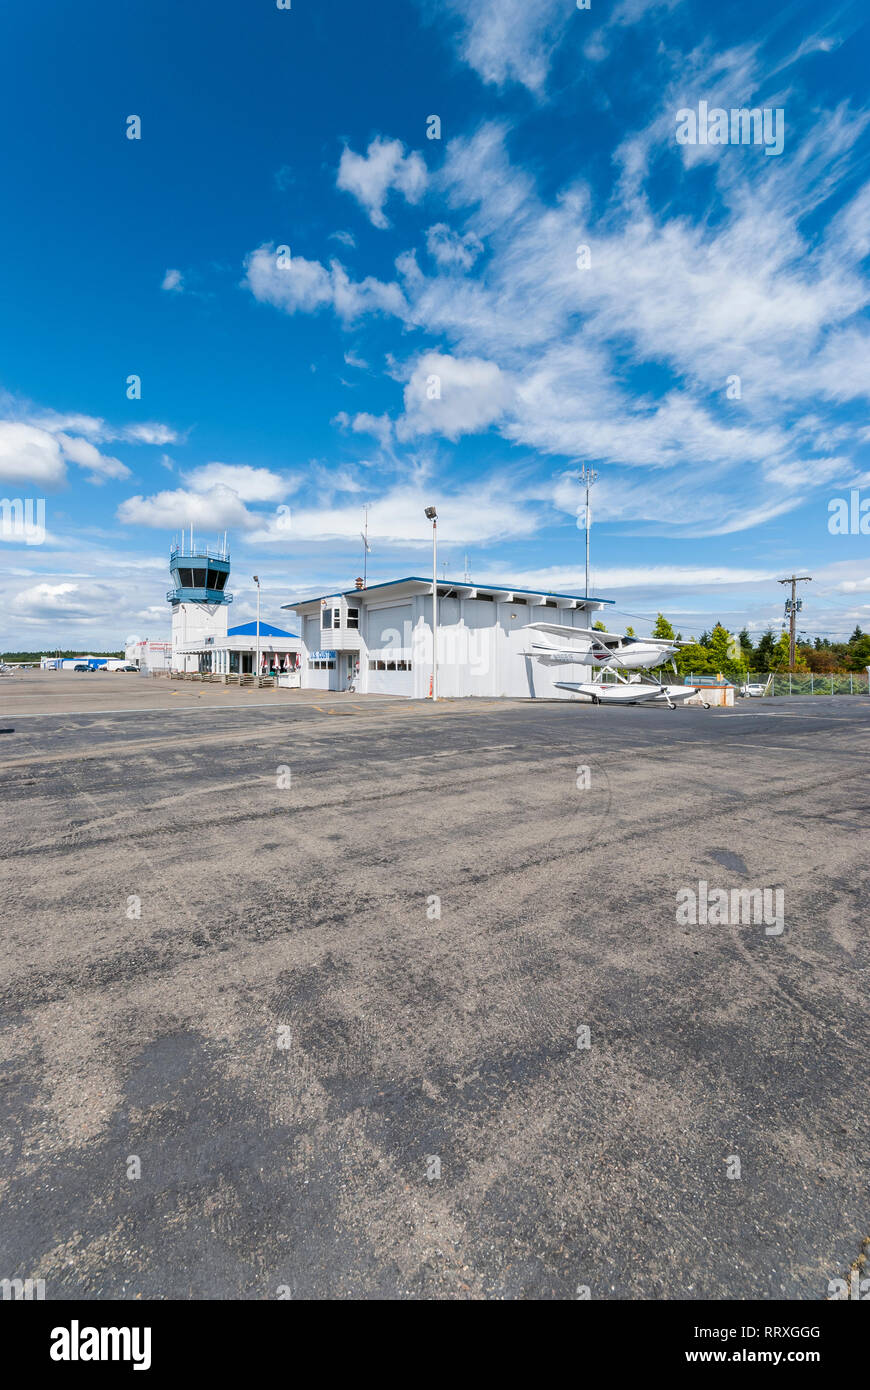 A high-wing amphibious aircraft sits in front of the control tower facility at the airport in Gig Harbor, Washington. - Stock Image